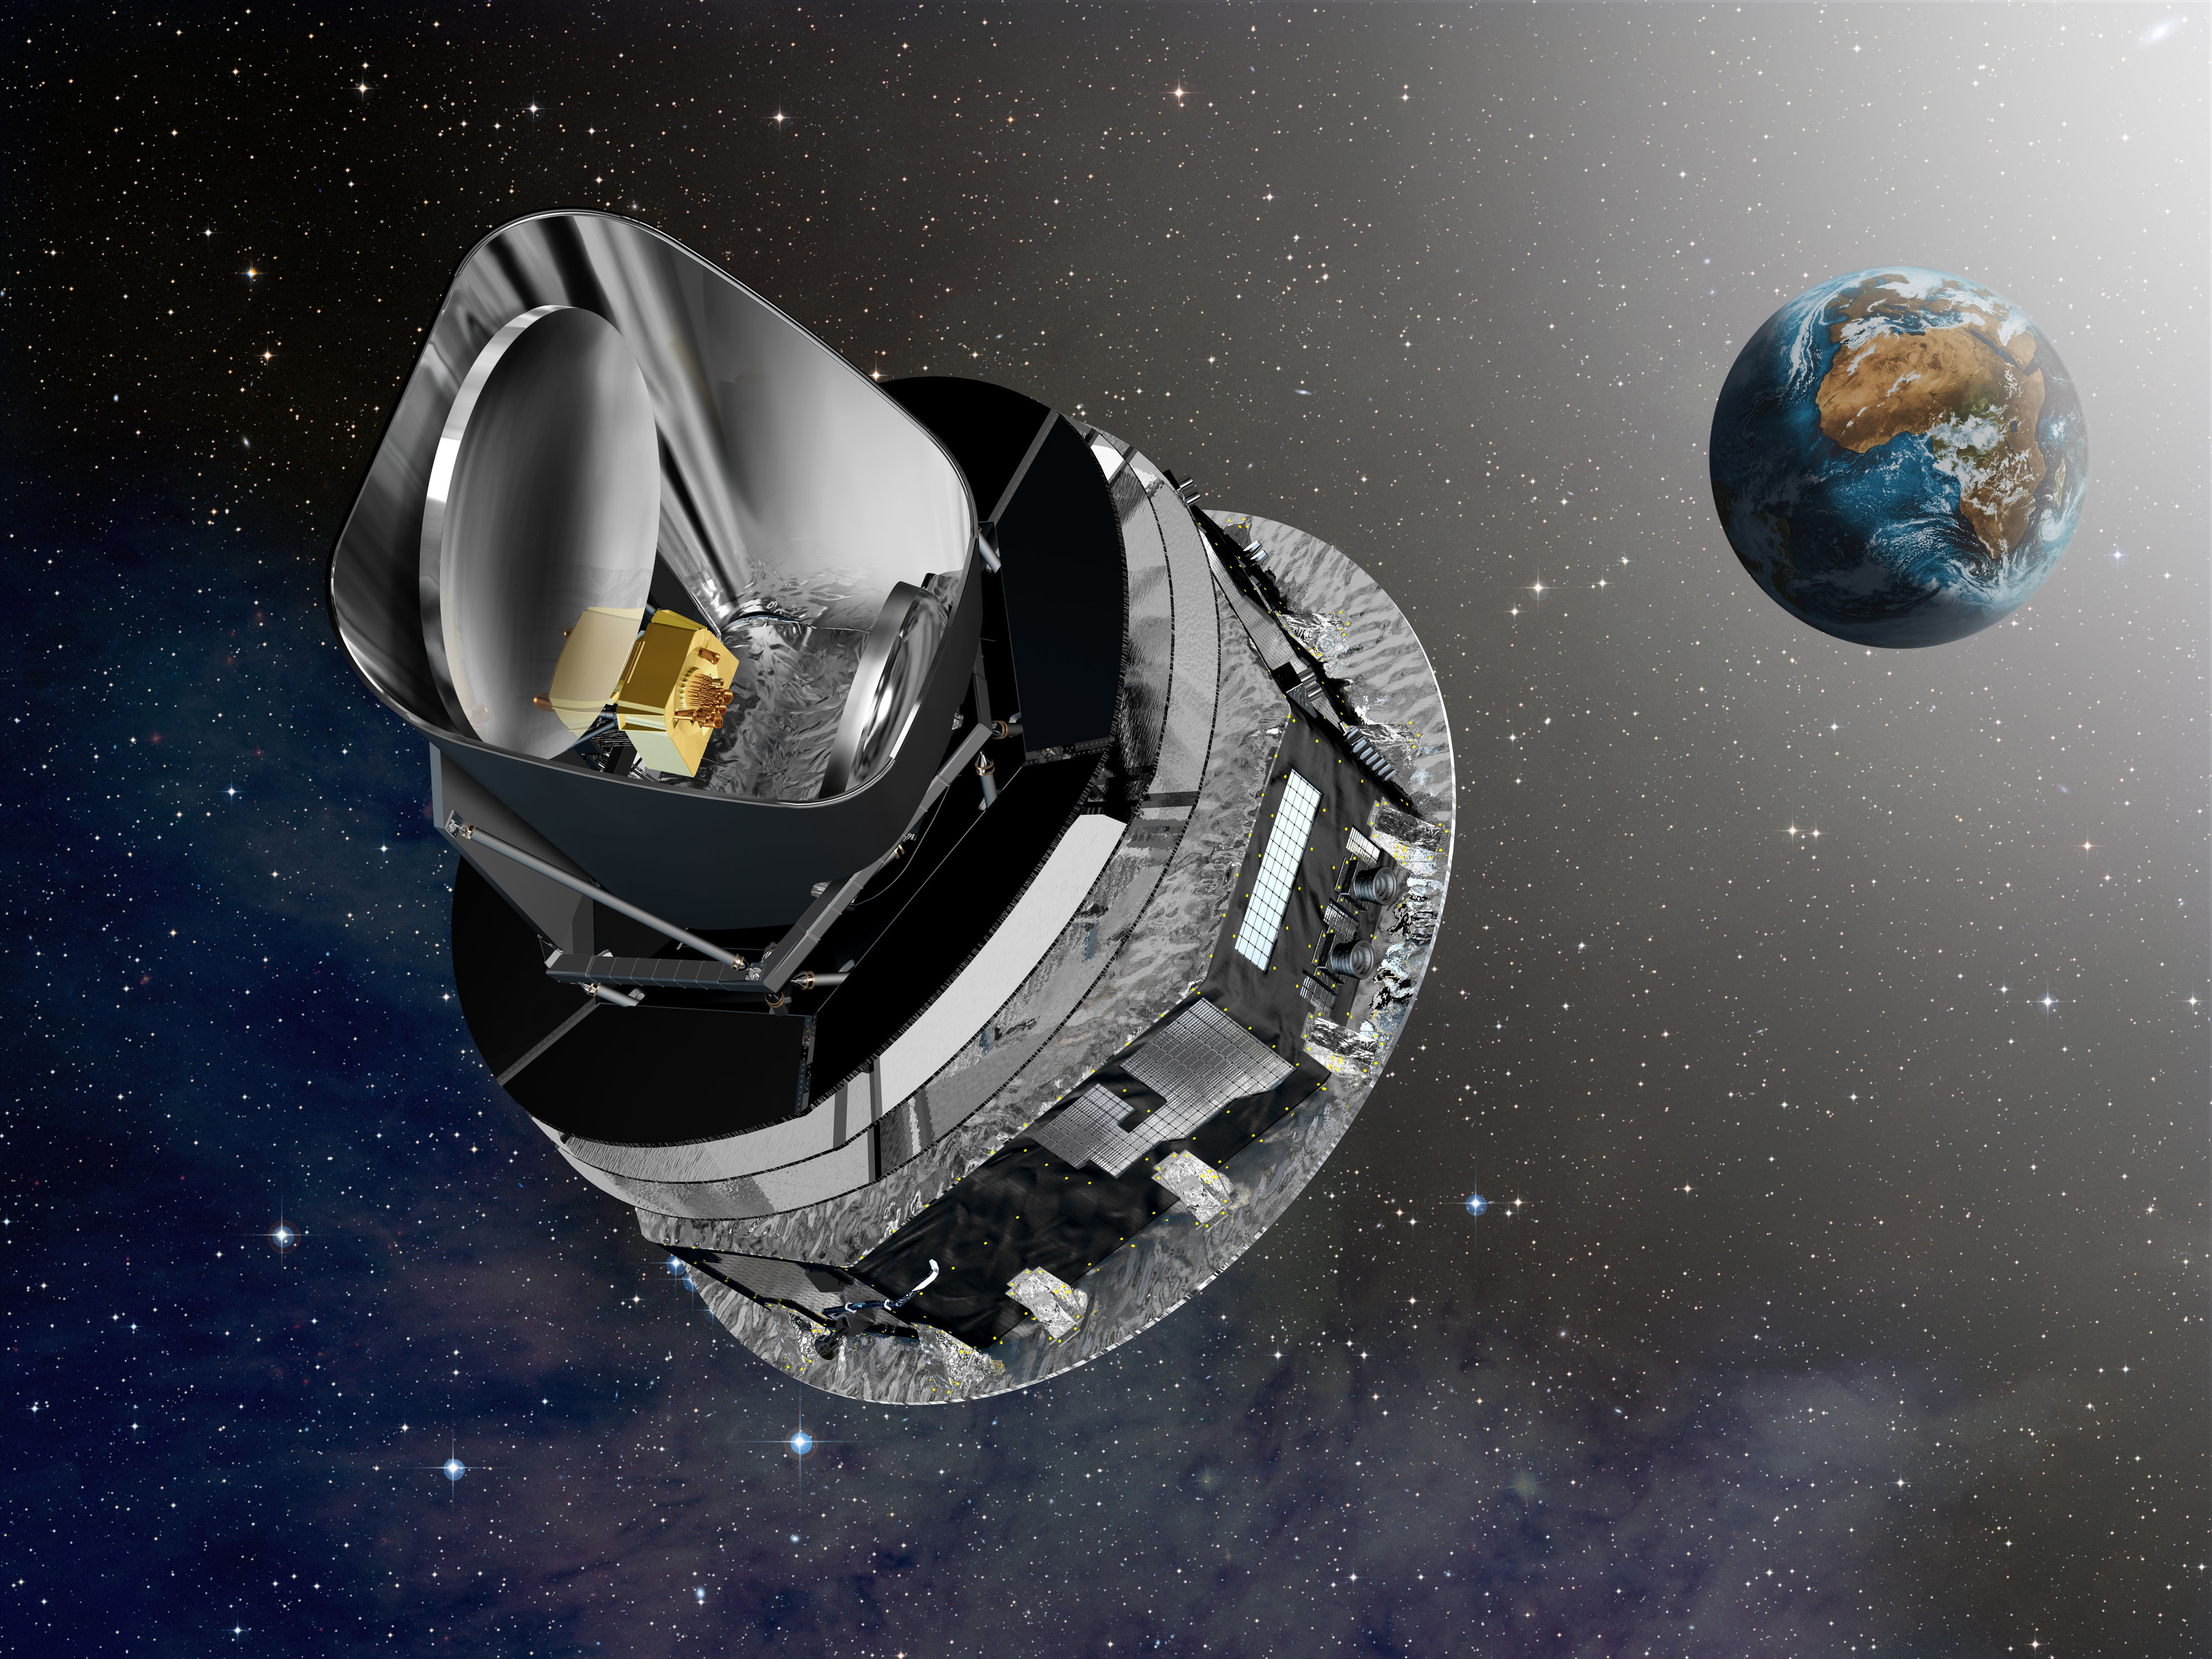 The Planck probe resides at the L2 Lagrange point. It was launched as part of a package with the Herschel infrared telescope.